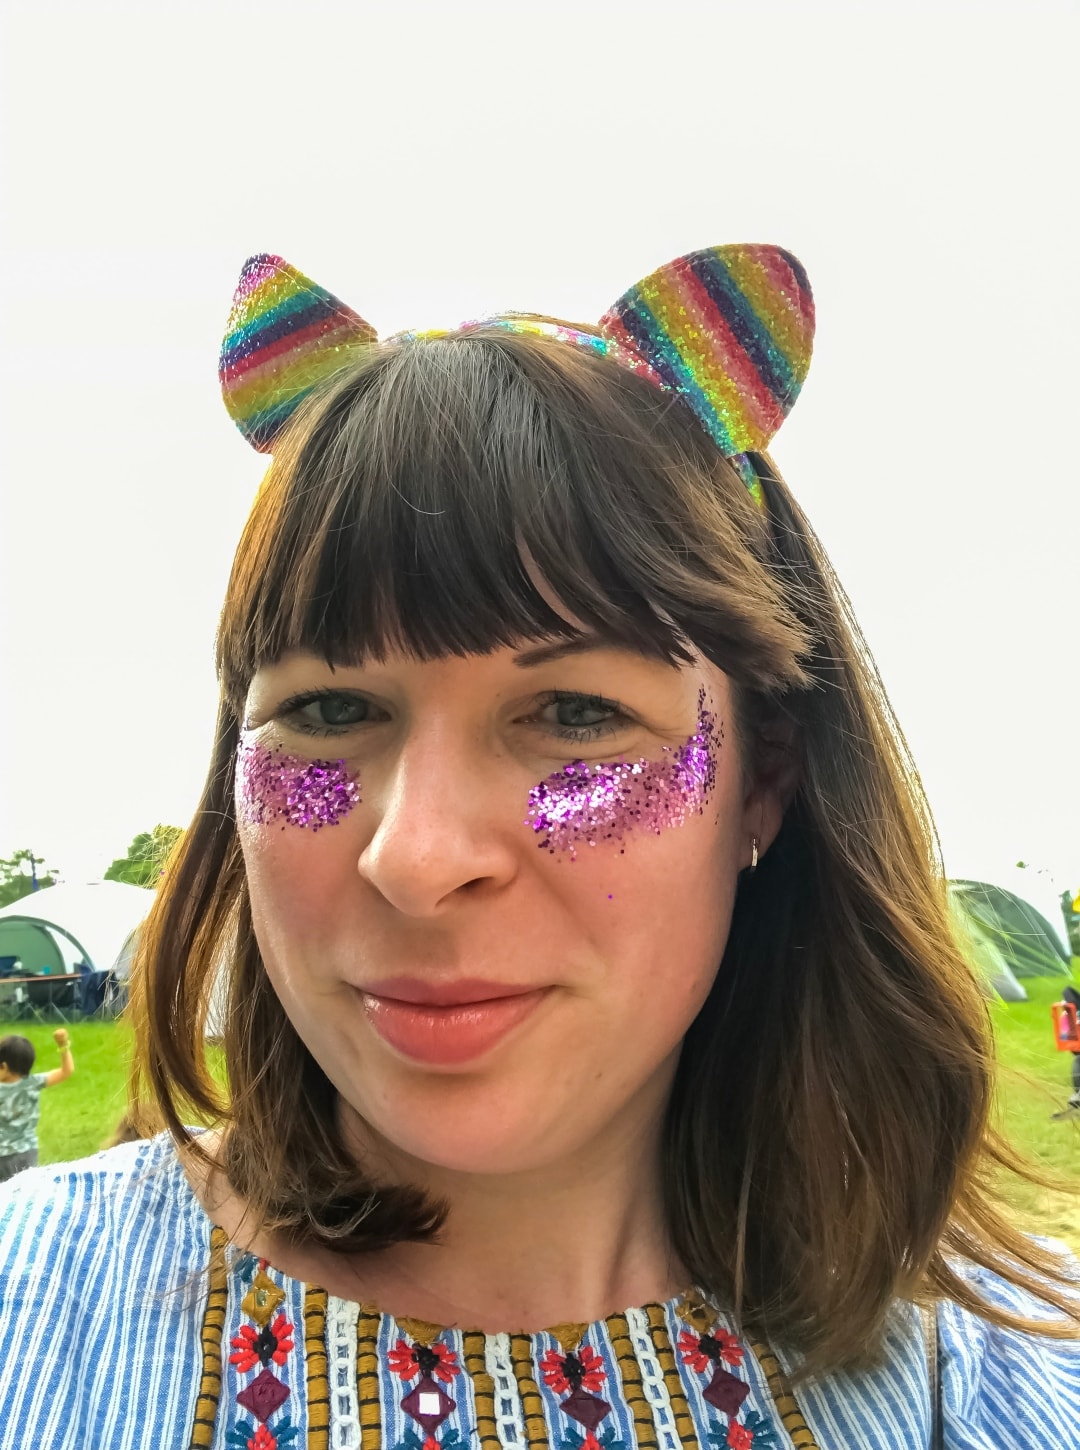 A photograph of a lady dressed up for a festival with glitter on her face at Elderflower Fields Festival - Elderflower Fields: The Perfect Family Festival - Part One - Mrs H's favourite things